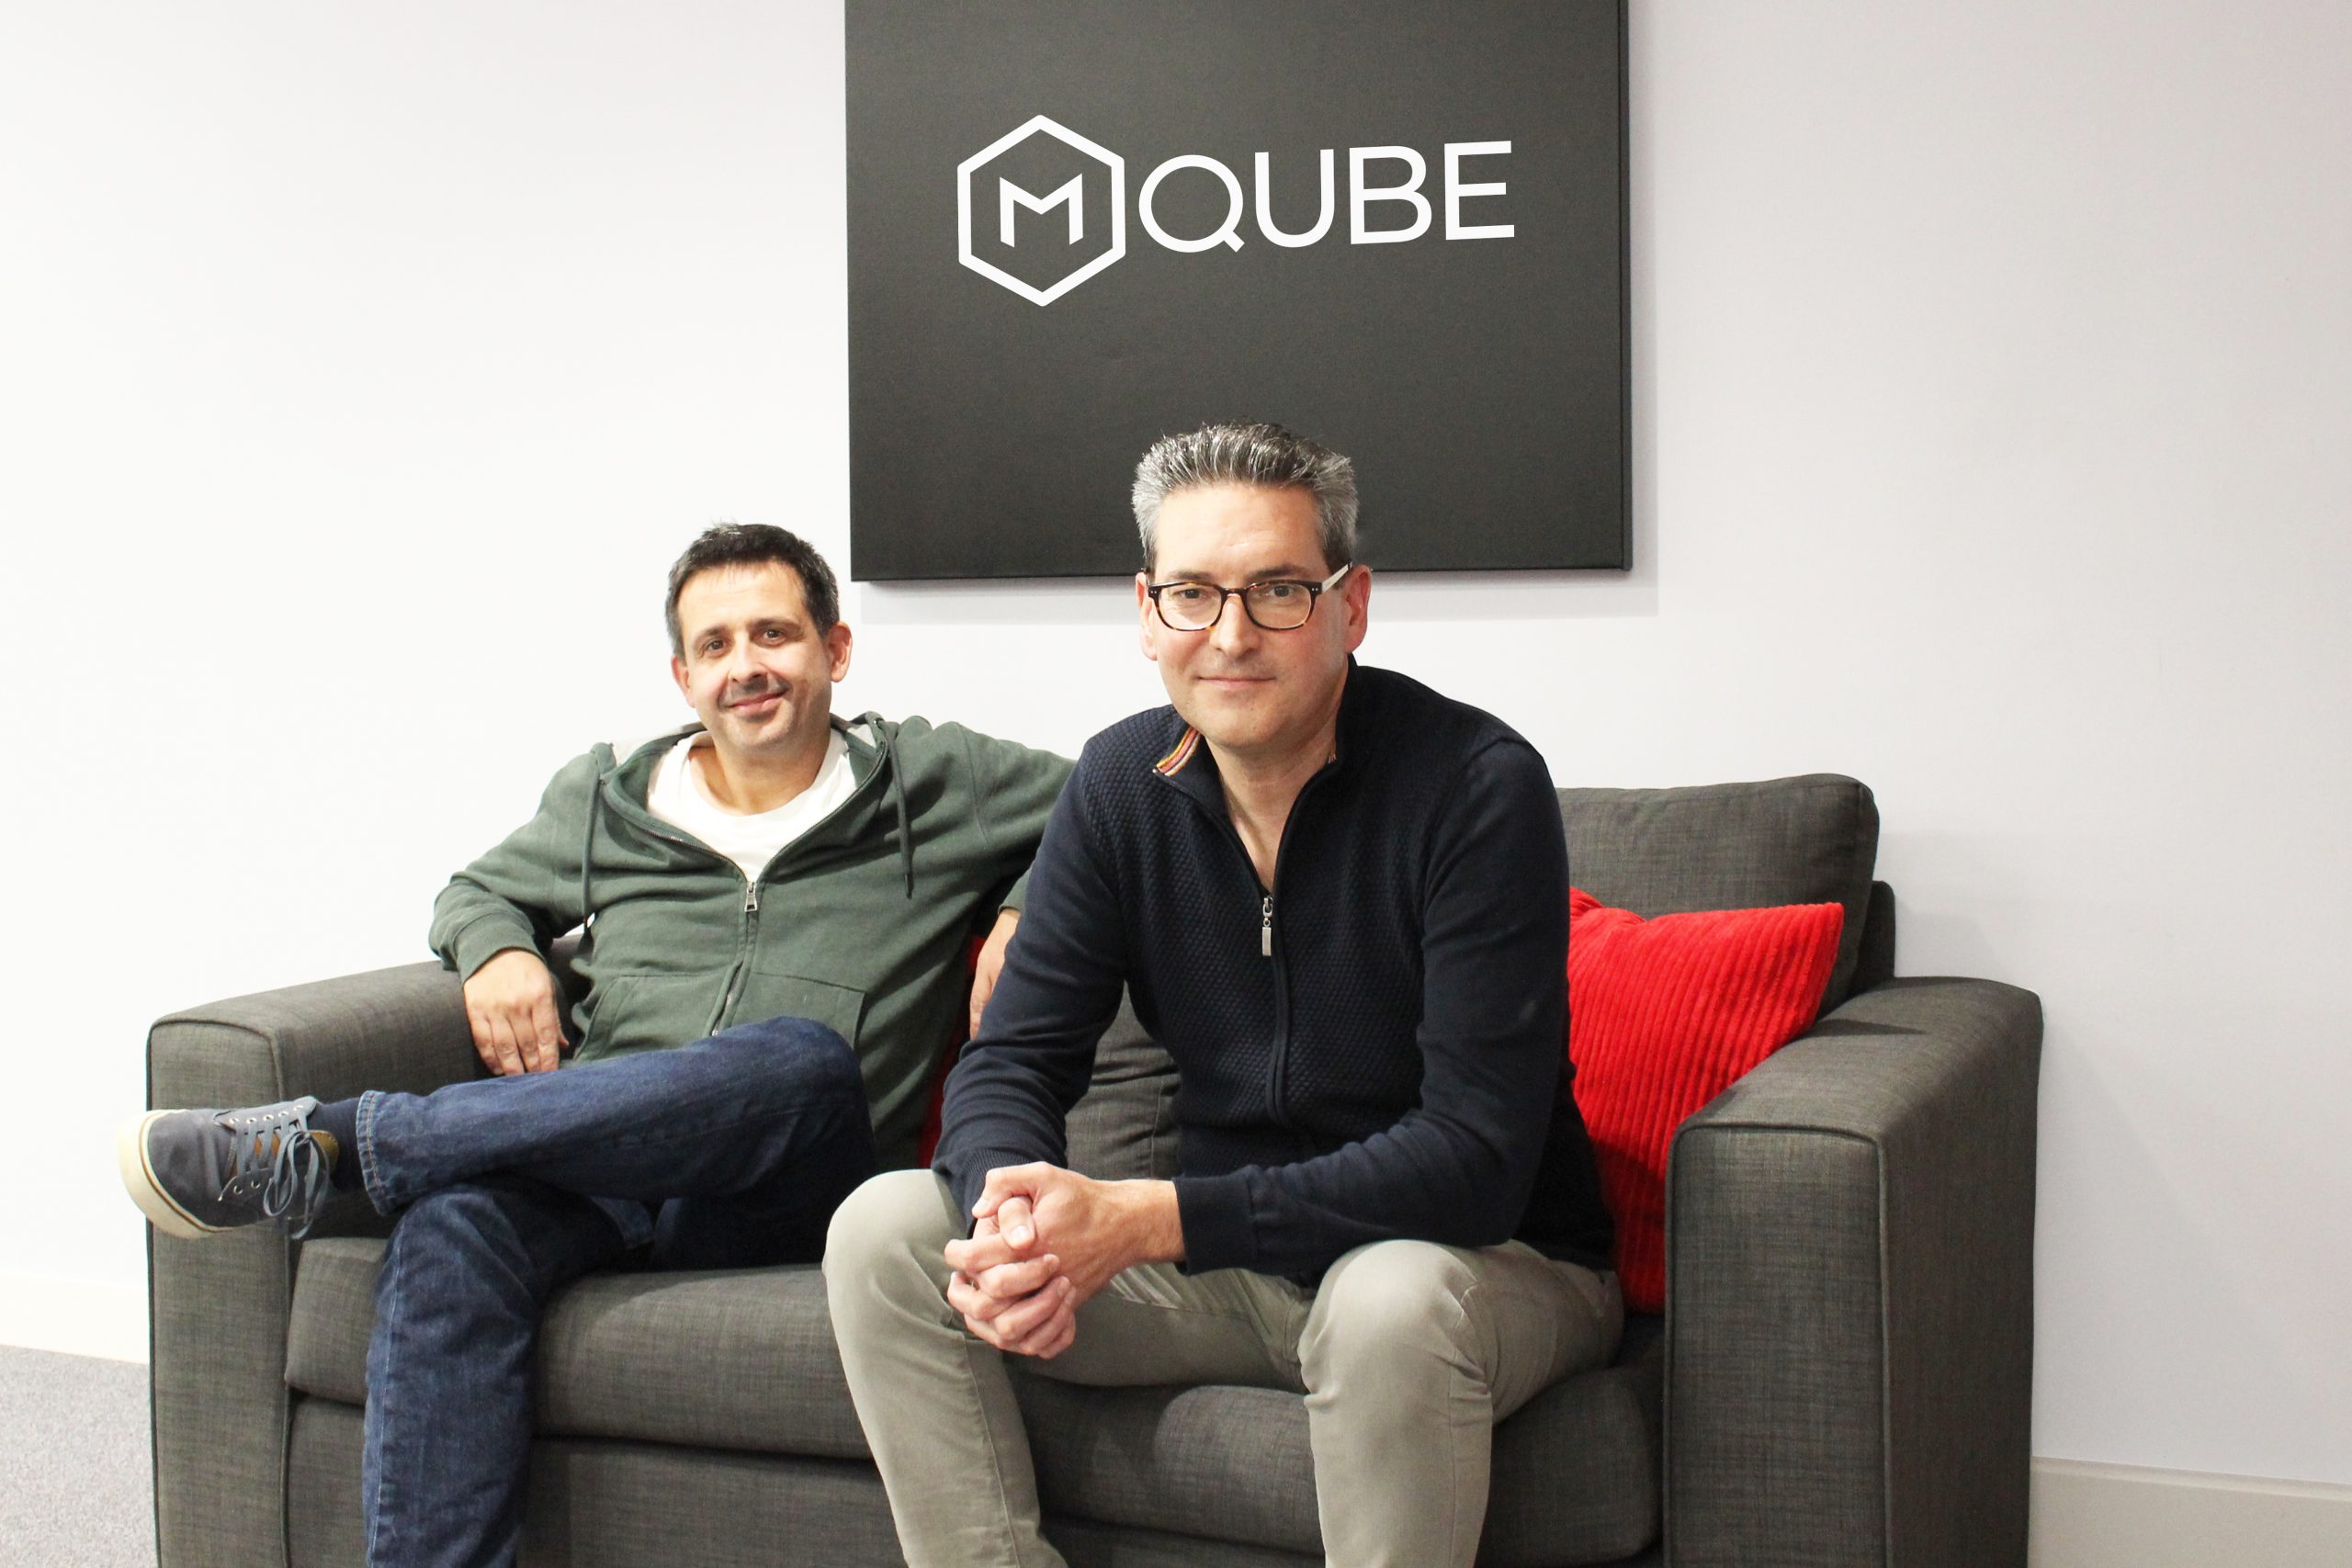 M:QUBE launches to transform the £270bn UK mortgage market